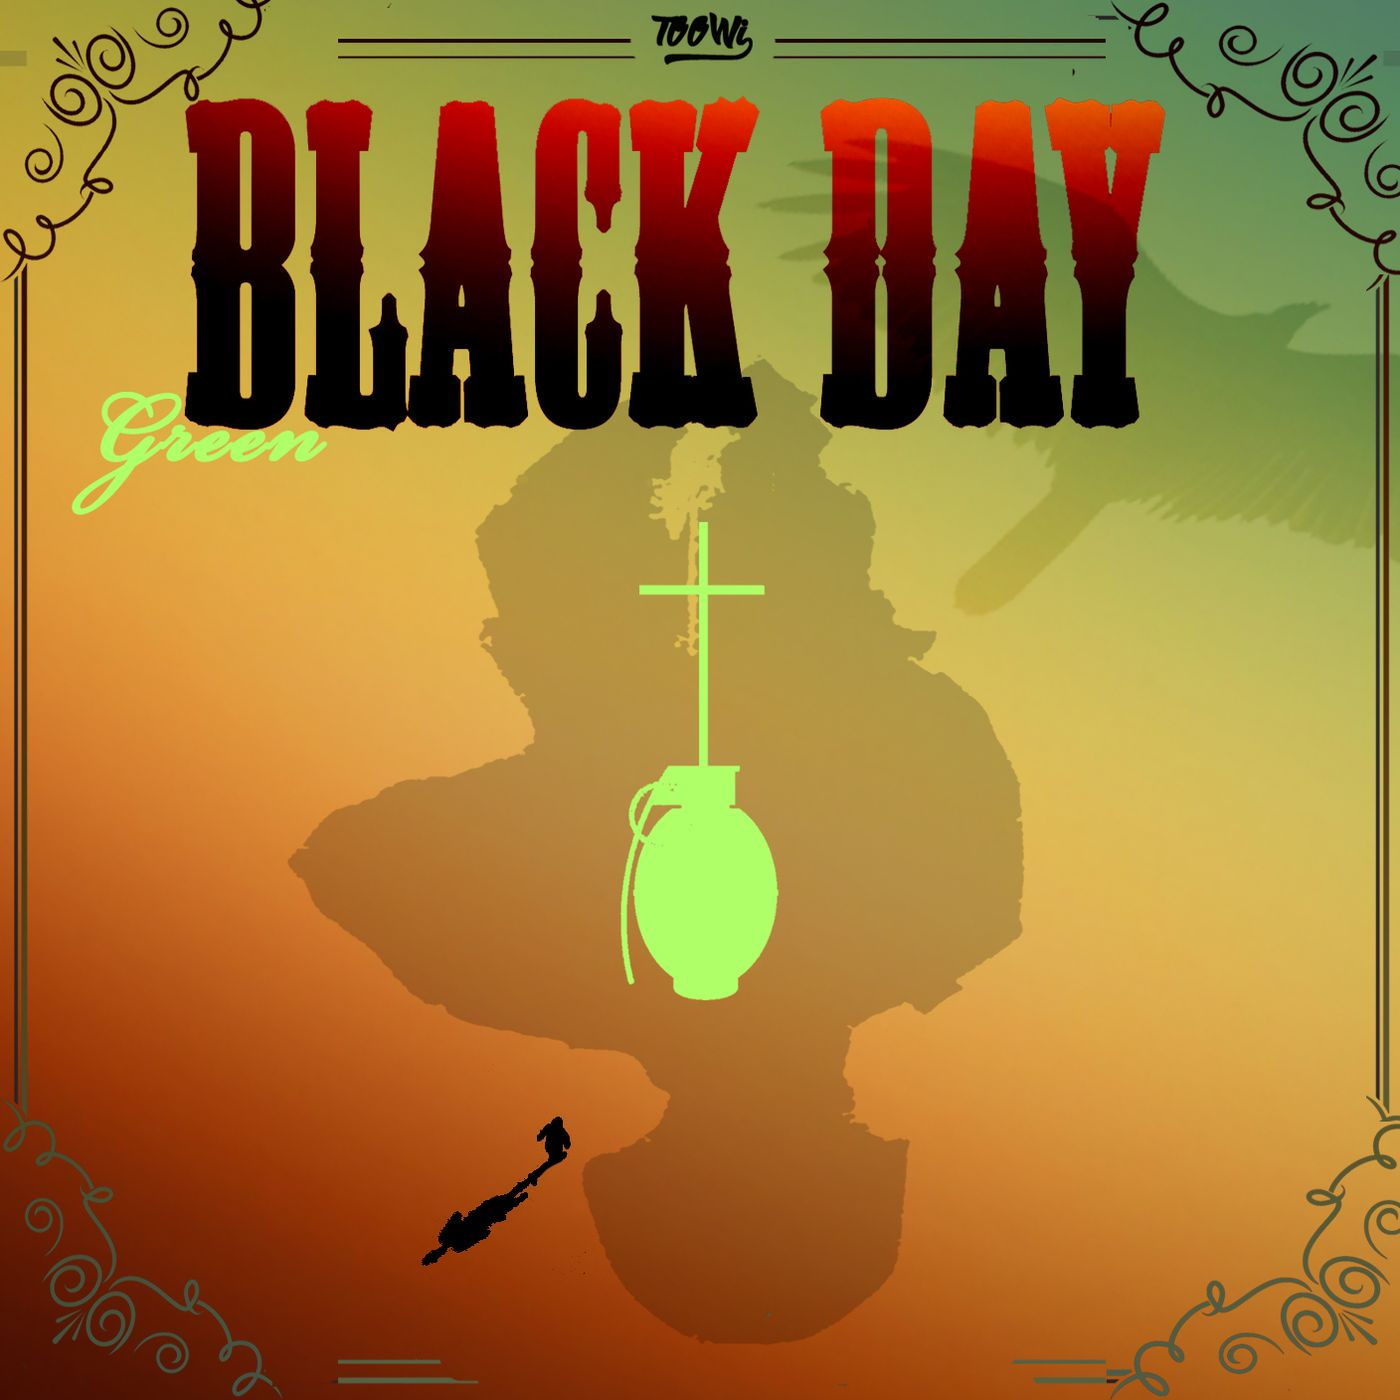 Black Day Green